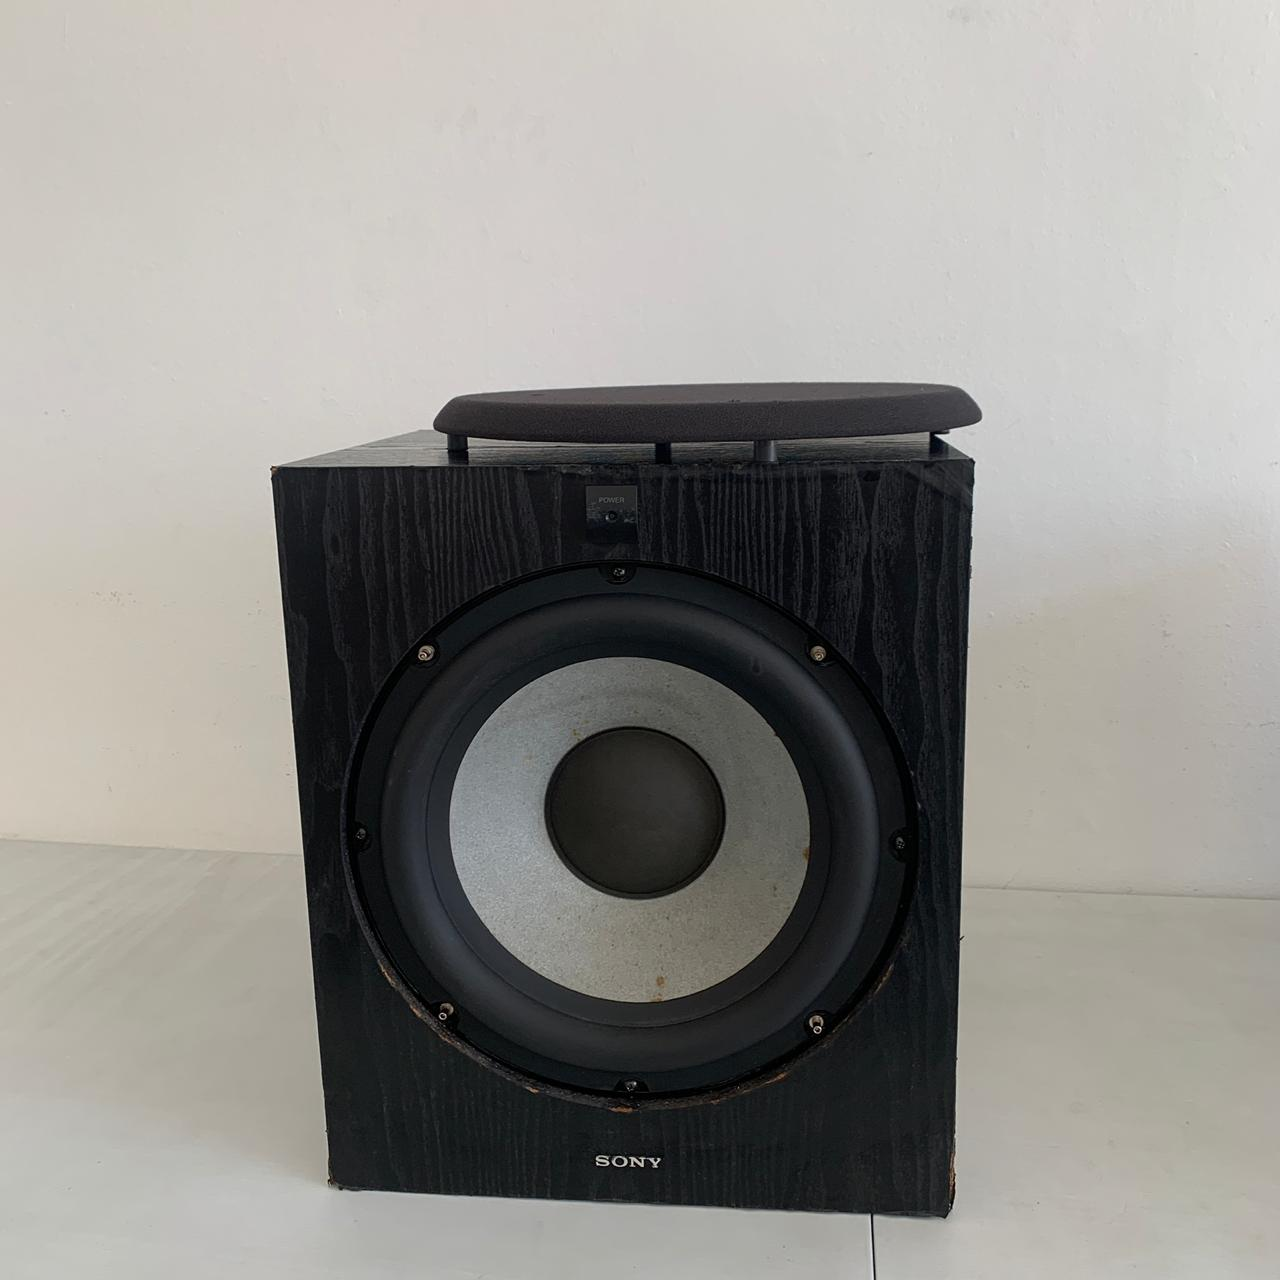 Sony 12inch w3000 Active subwoofer